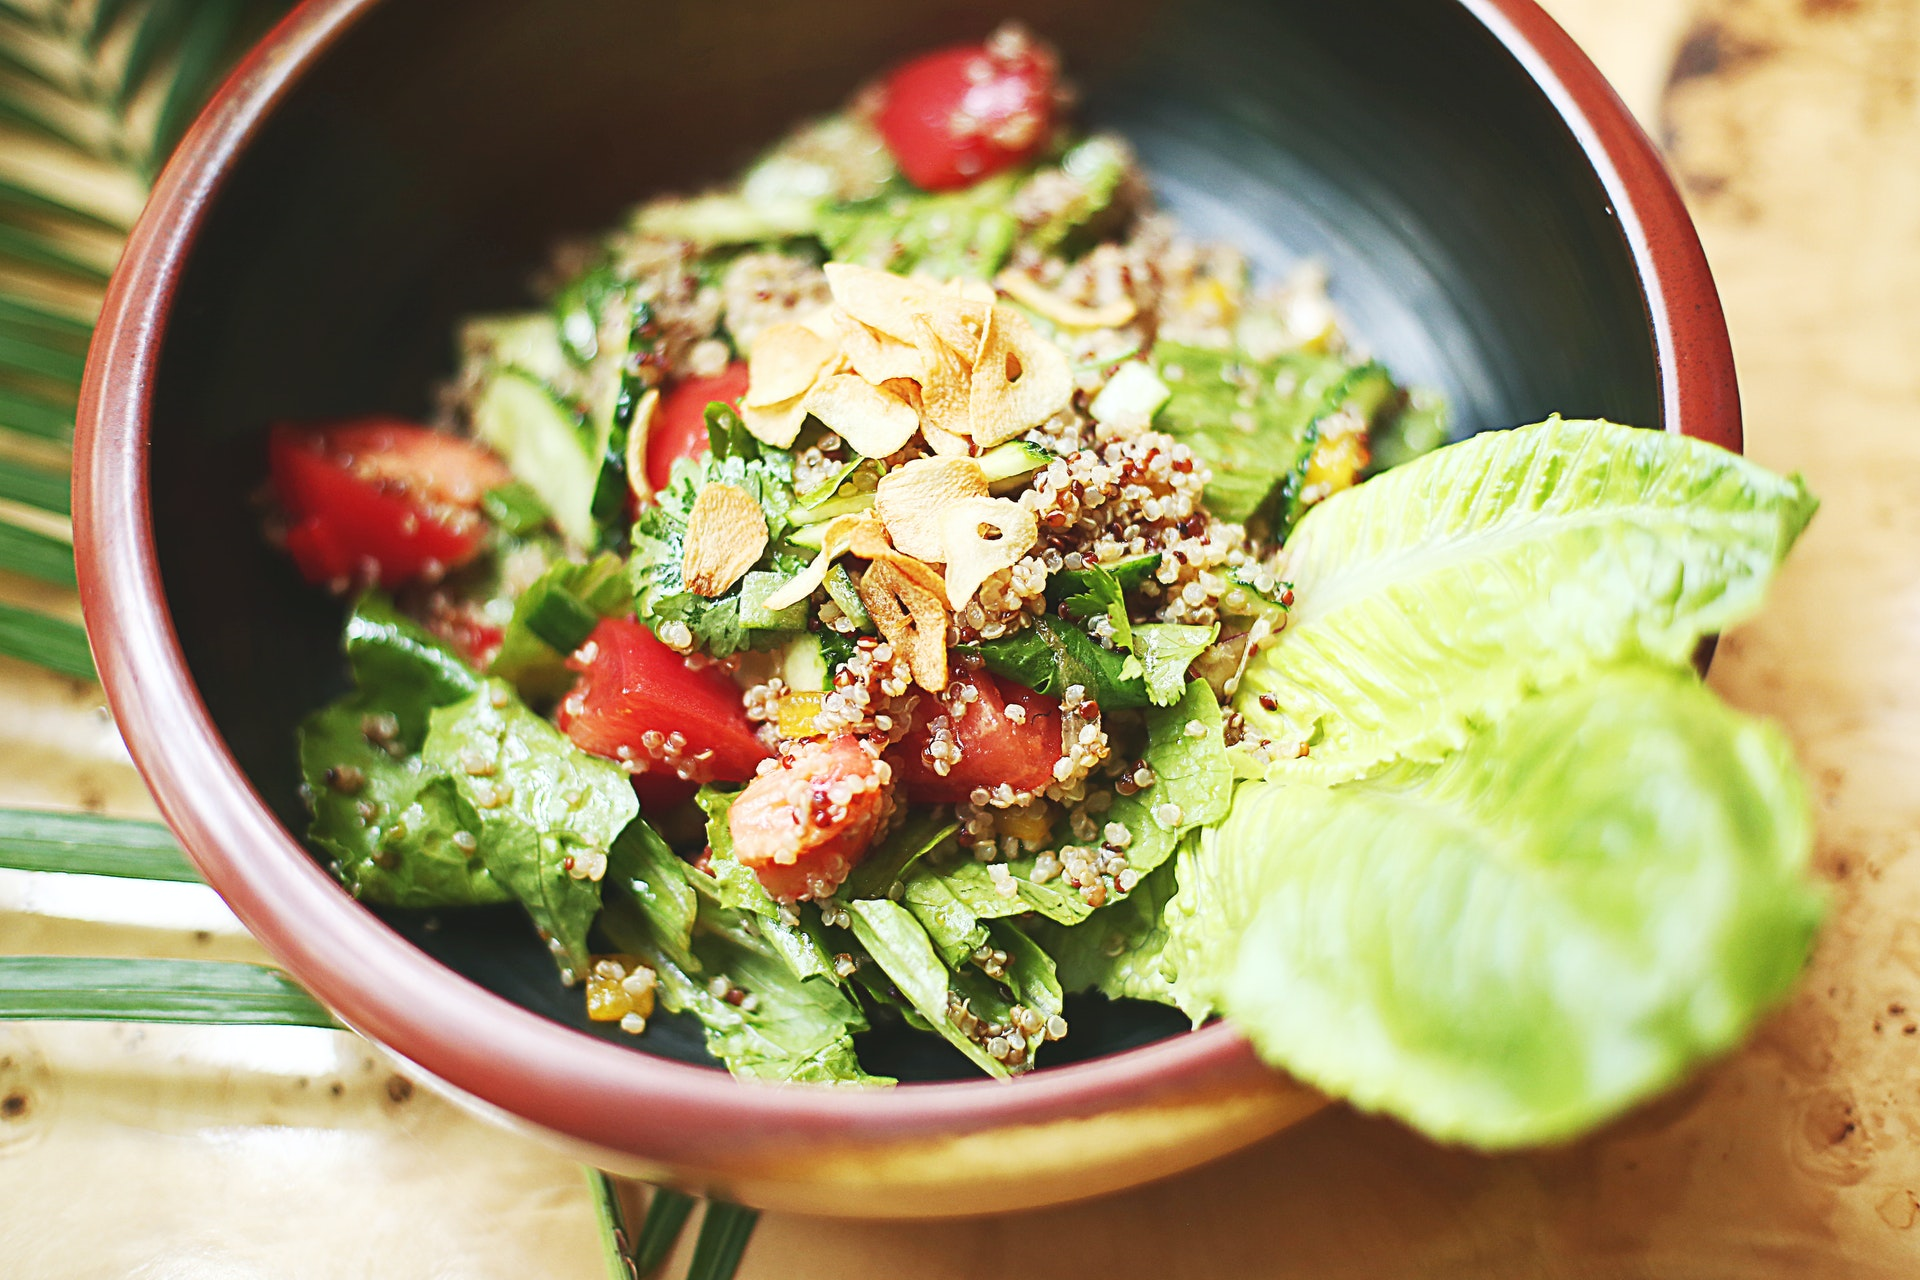 Superfood salad in a green and brown bowl